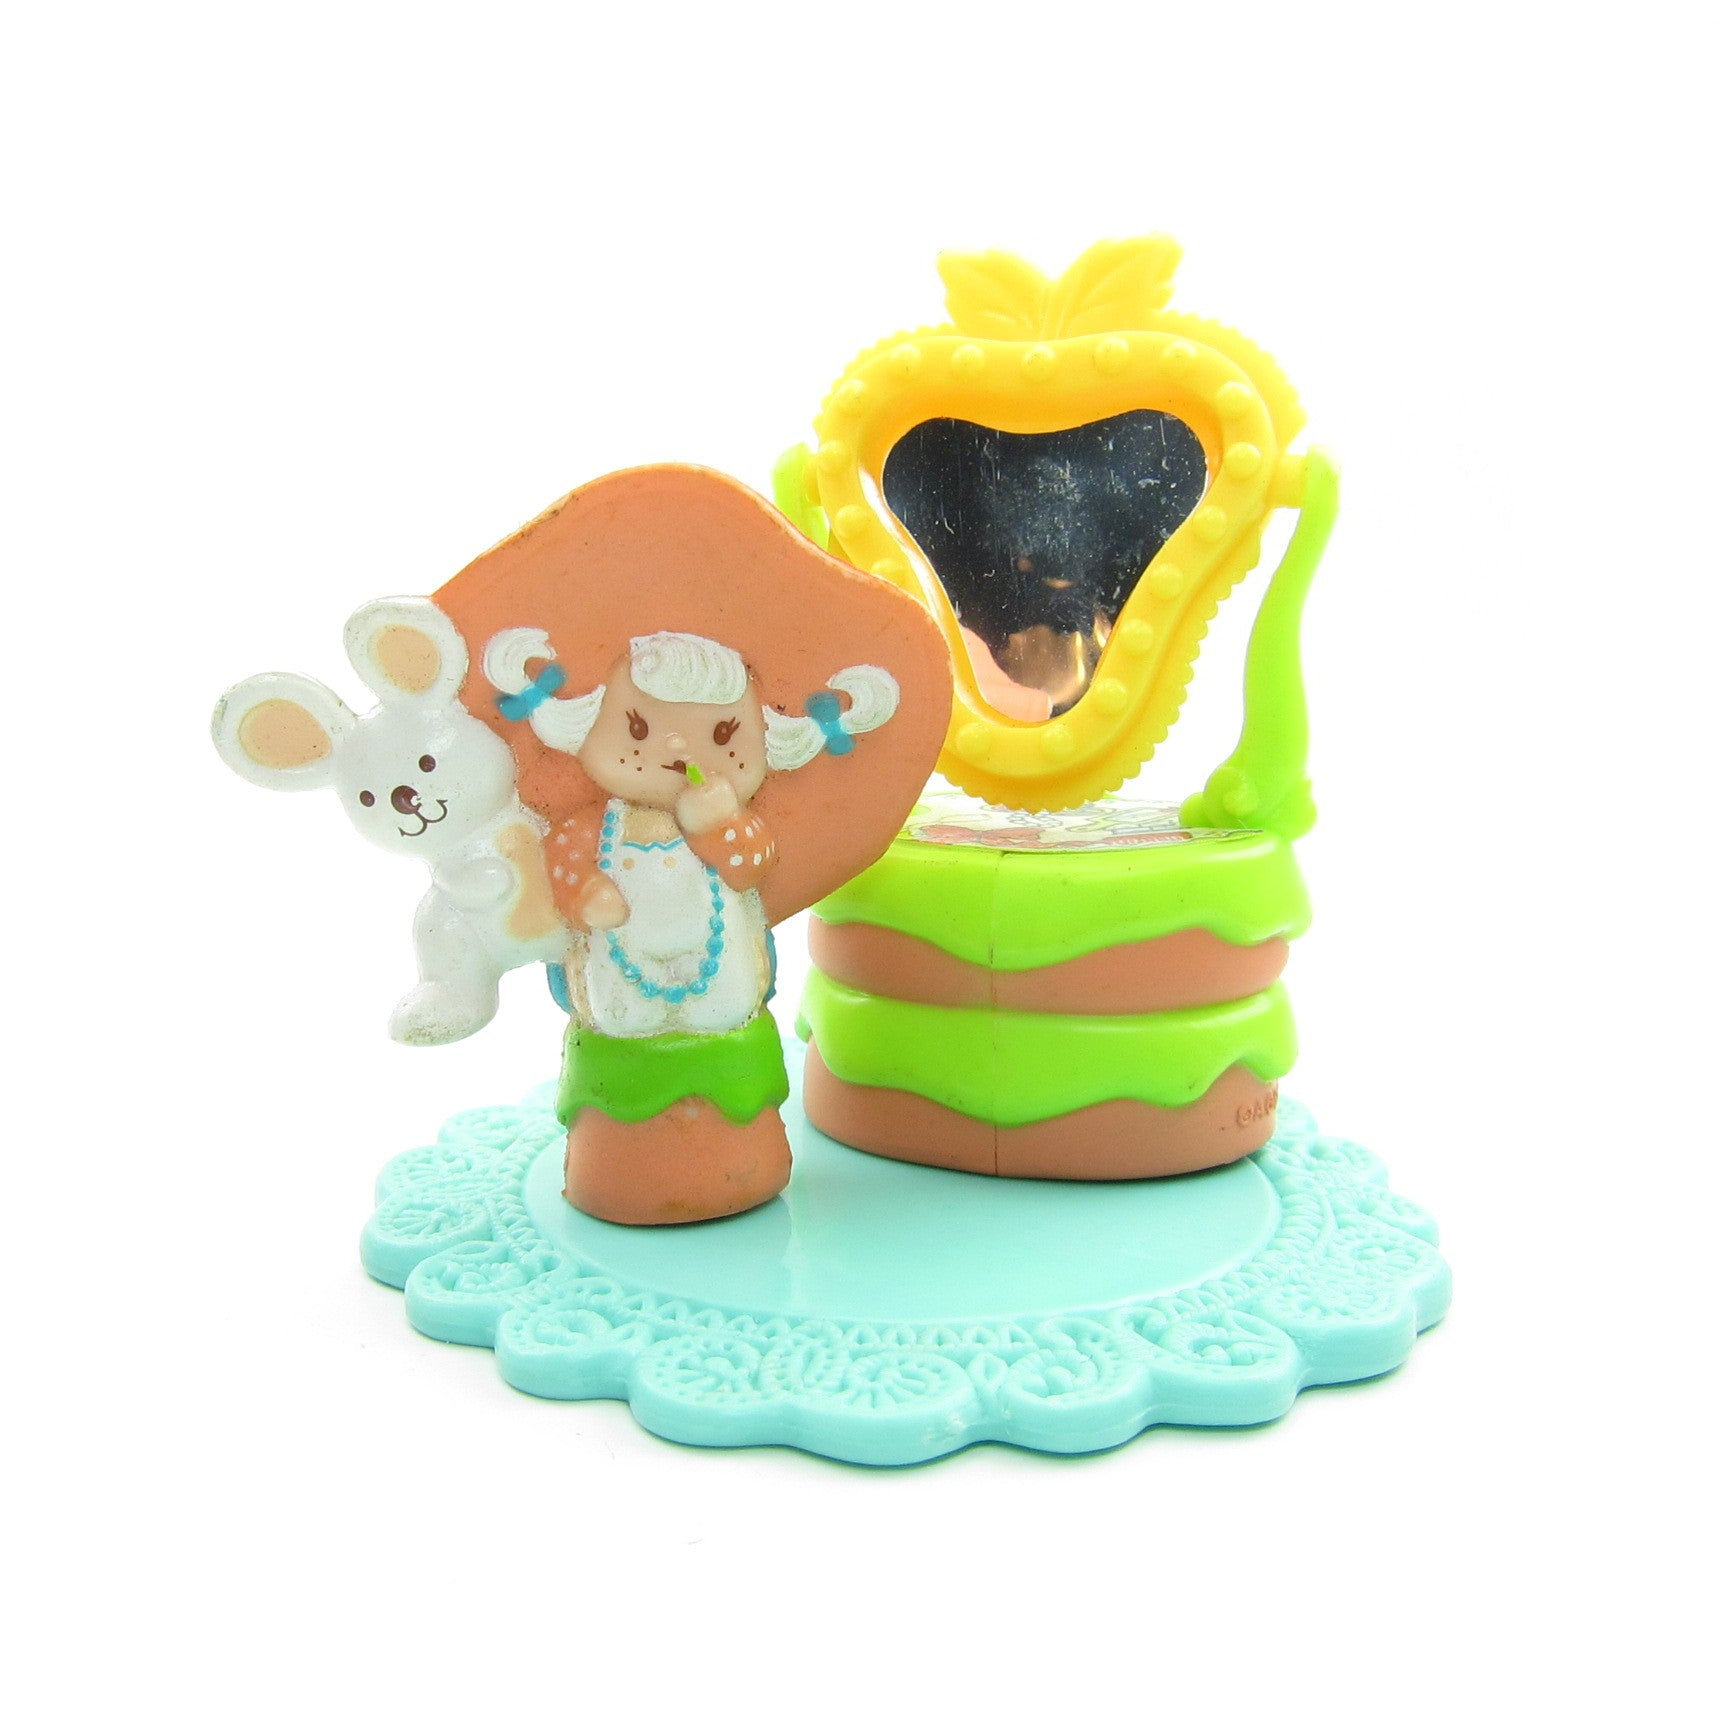 Apricot & Hopsalot Play at the Vanity miniature figurine set